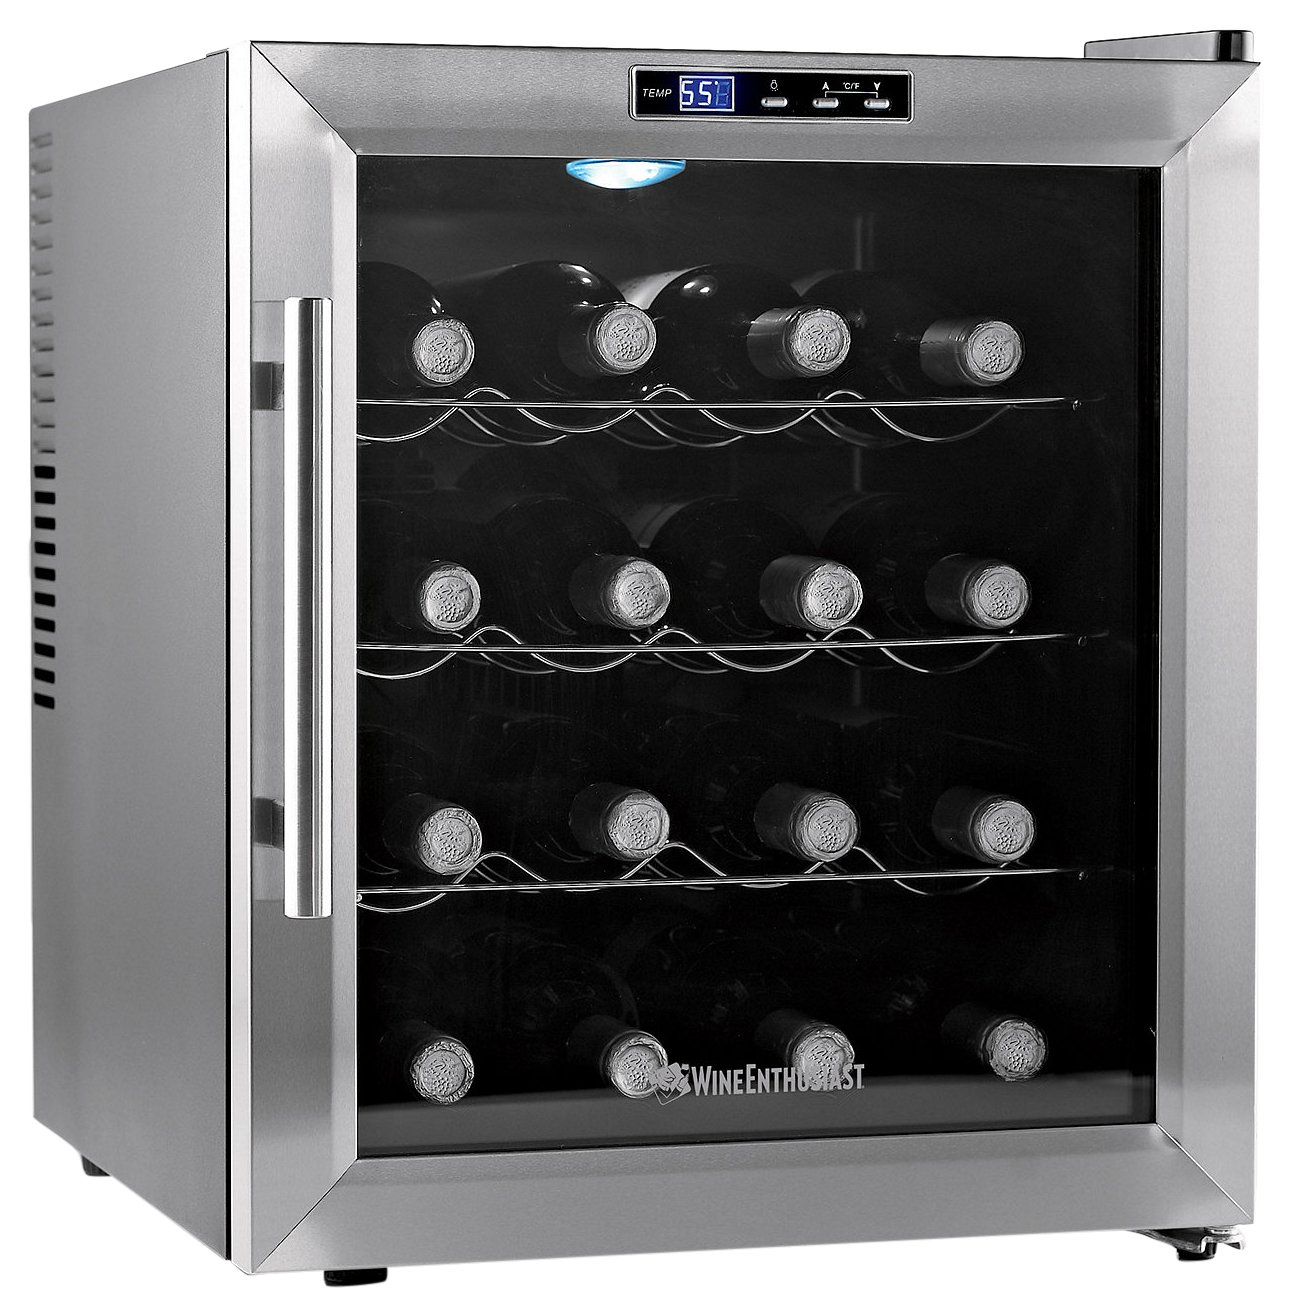 Wine Enthusiast 272 02 17 Silent 16 Bottle Touchscreen Wine Cooler, Stainless Steel Wine Enthusiast (Kitchen)